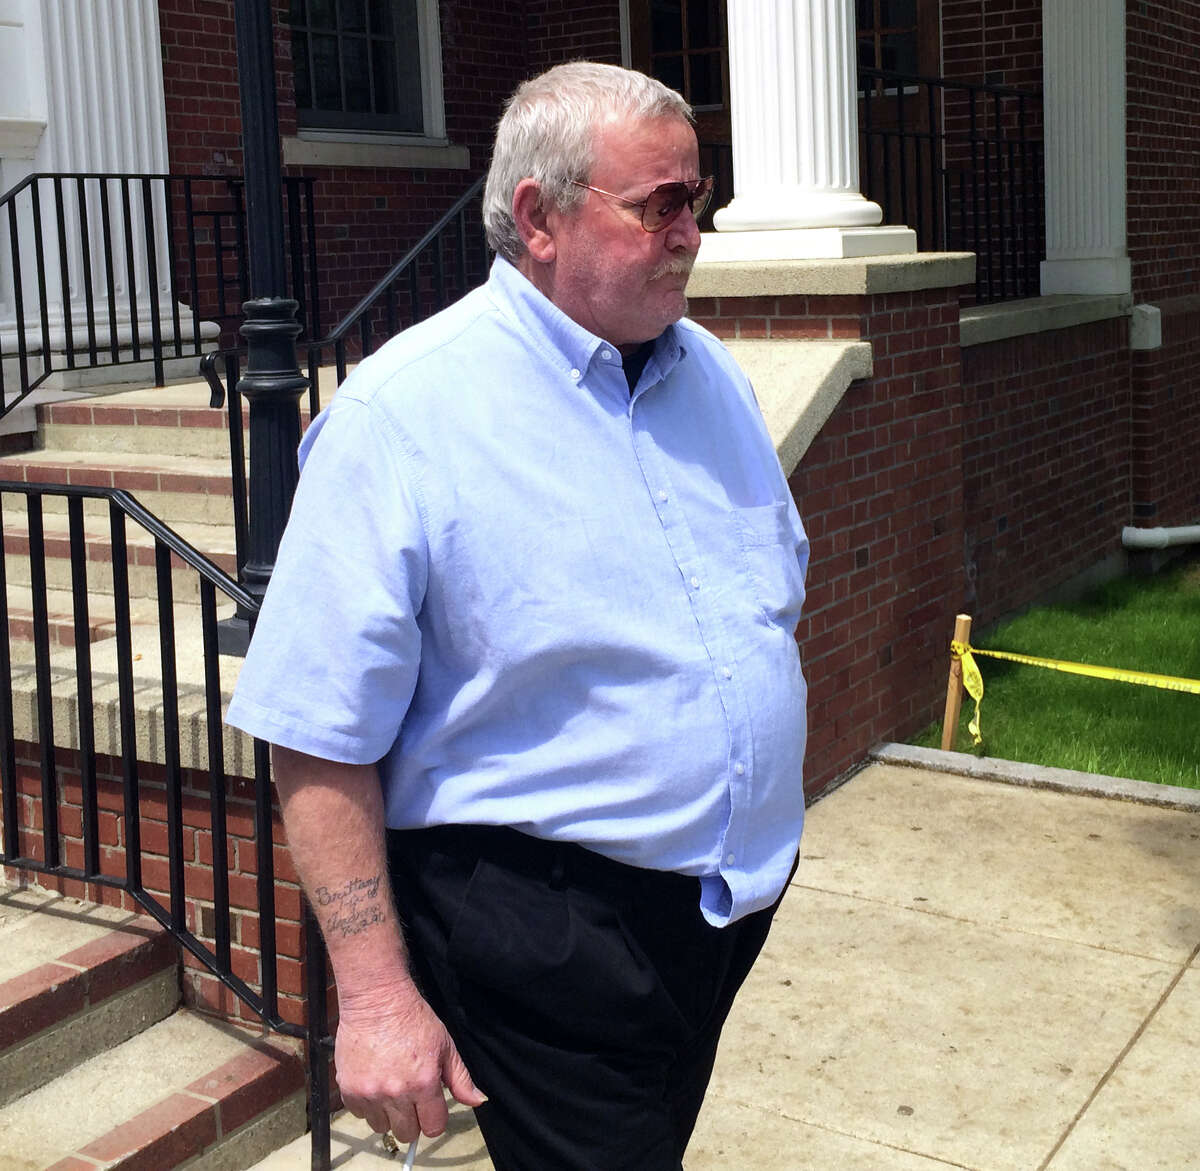 Arthur Gauvin, who allegedly held his sister captive in a room of their Seymour home for several years, leaves Milford Superior Court following a court appearance May 14, 2014.